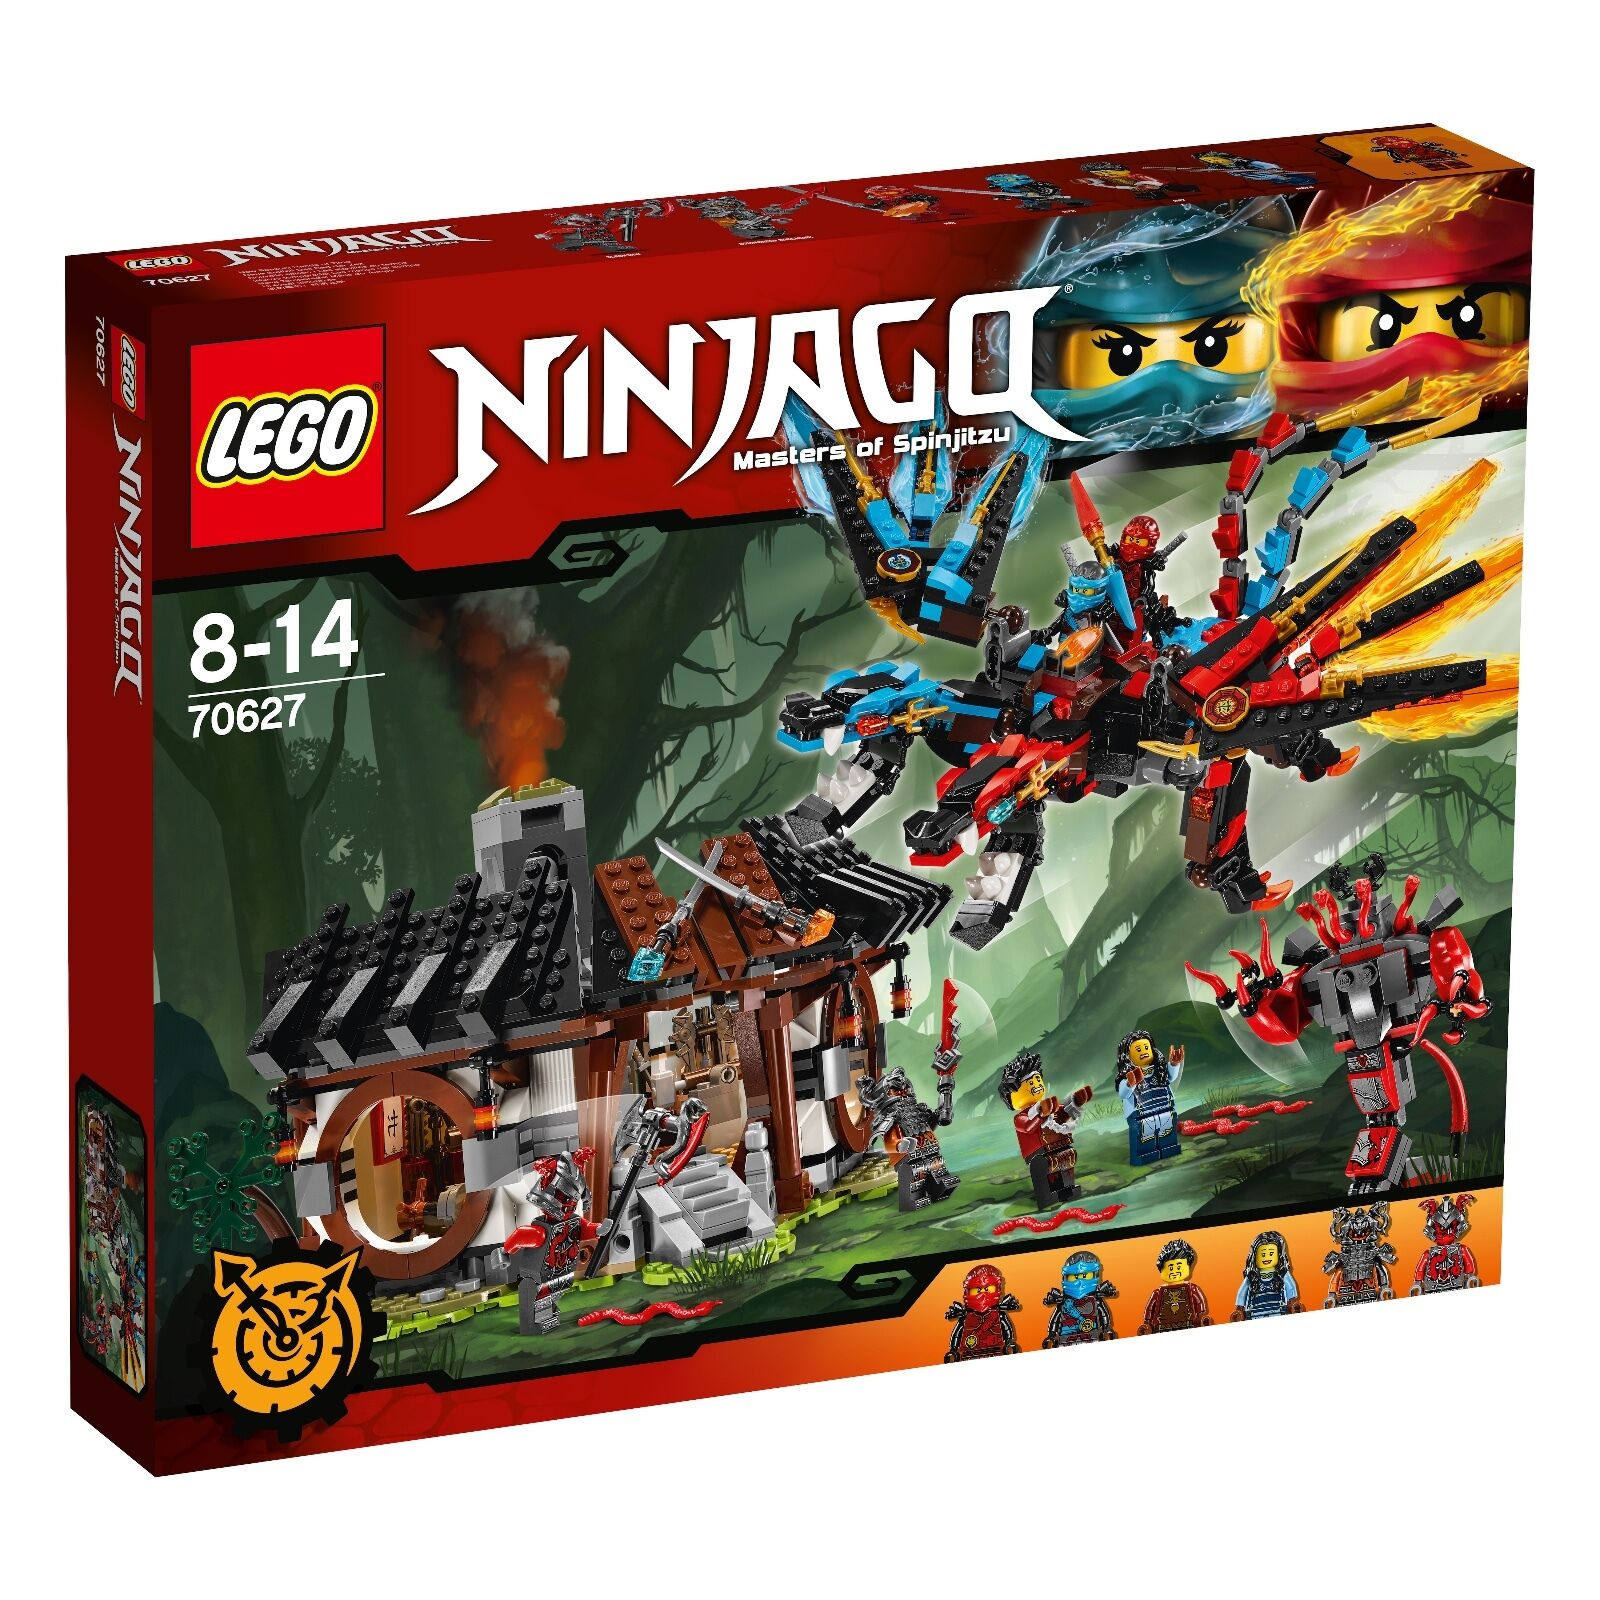 LEGO ® Ninjago ™ 70627 dragon forge neuf emballage d'origine  _ Dragon 's Forge nouveau MISB NRFB  confortable